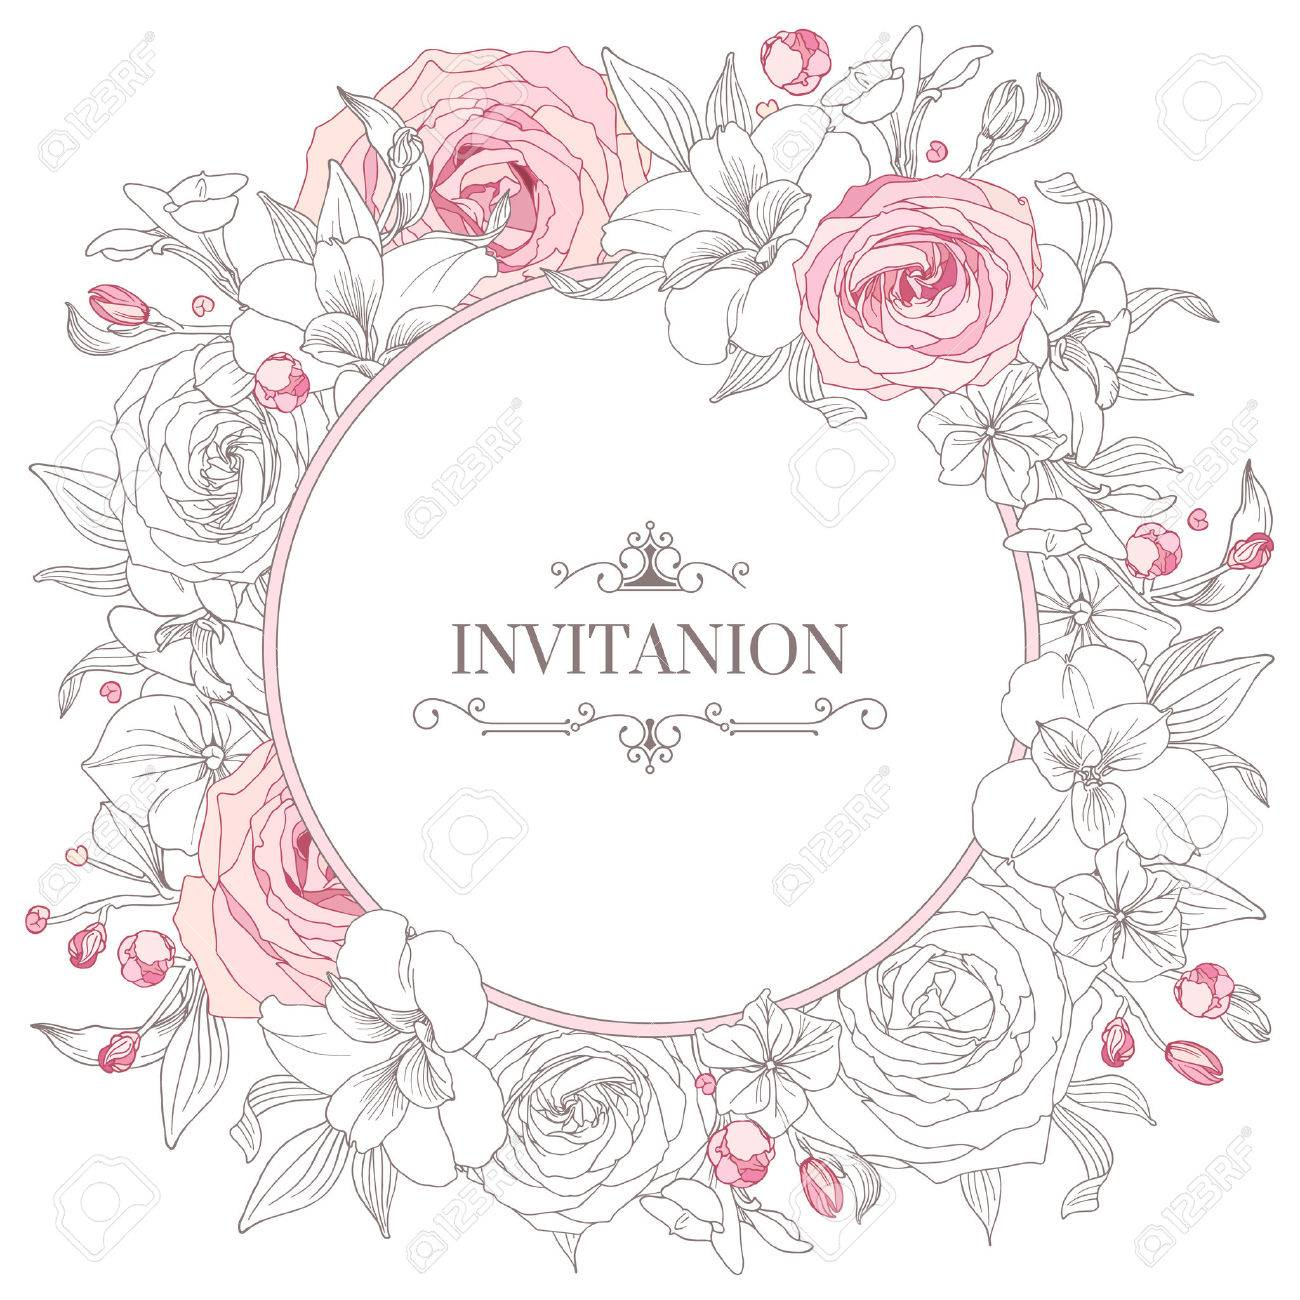 Greeting card with flowers. Hand-drawn floral wreaths. Wedding card template. - 56699689